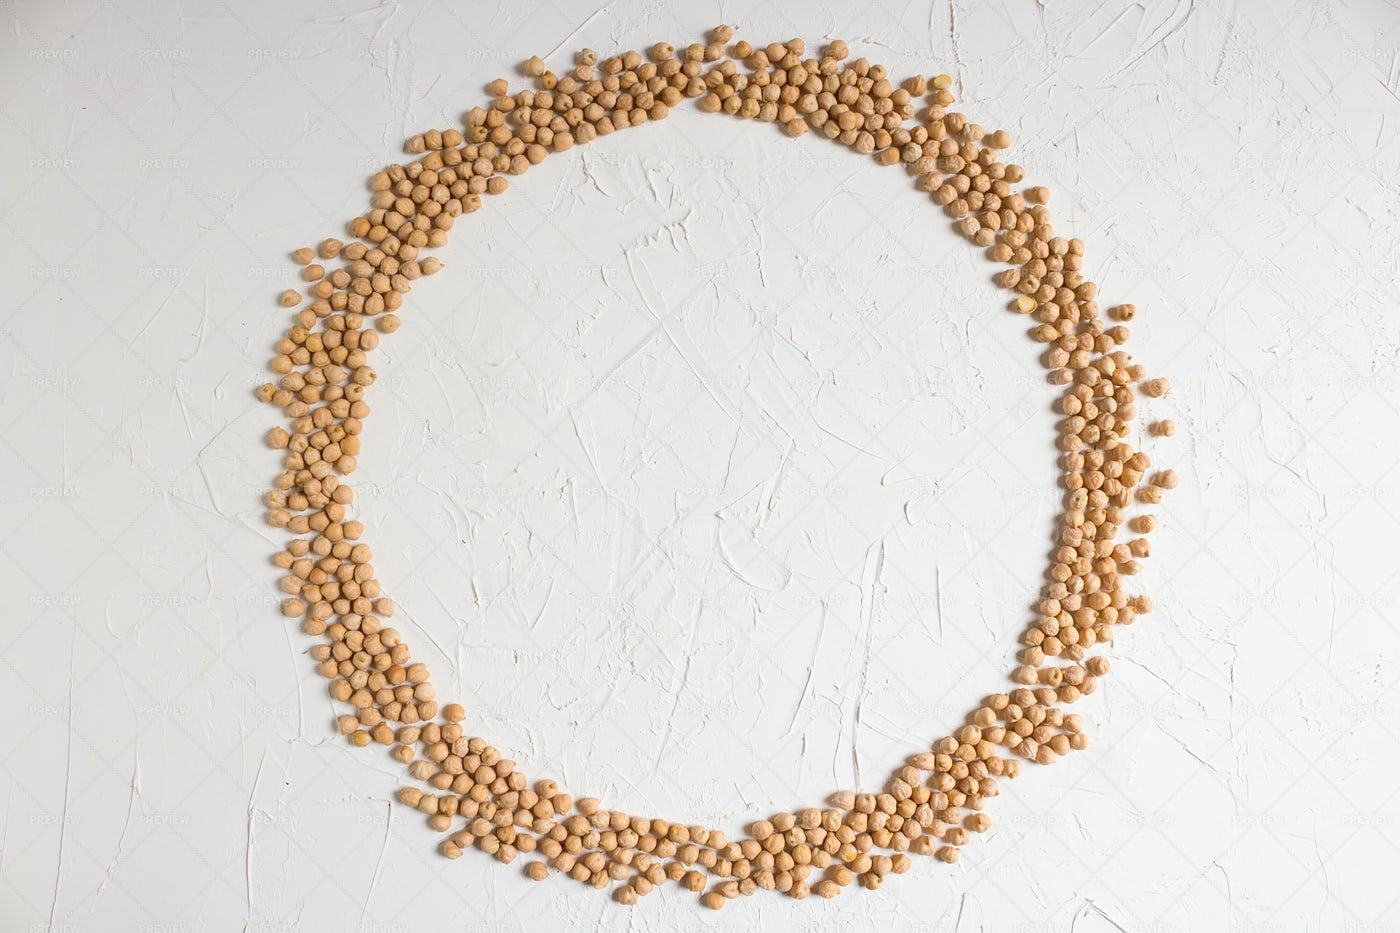 Round Frame Of Chickpeas: Stock Photos